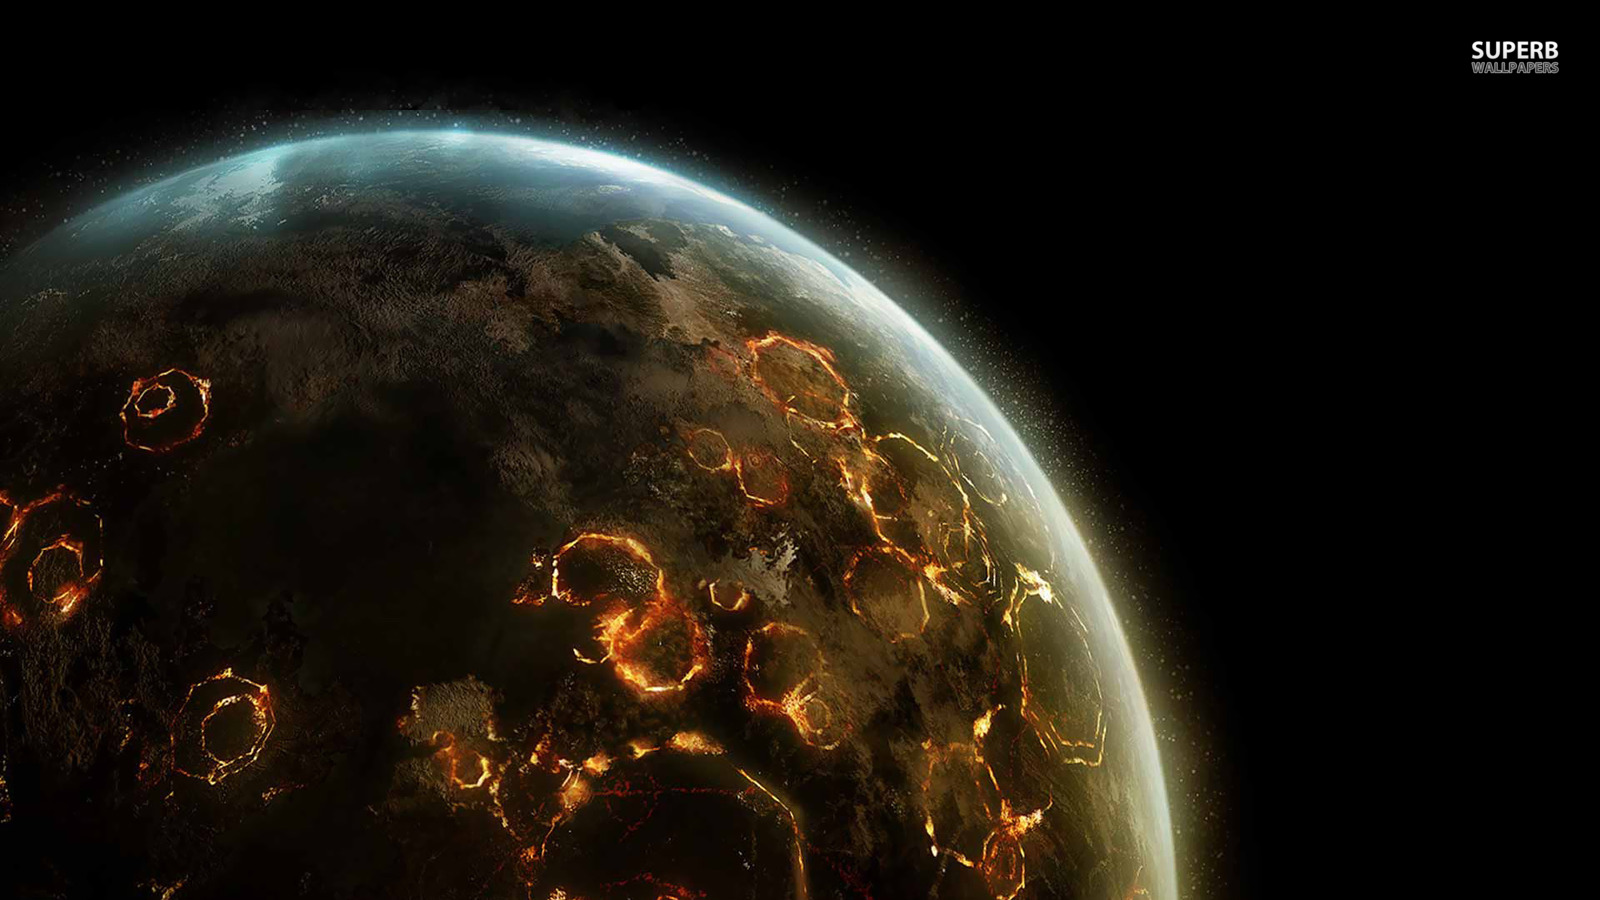 Exploding Planets